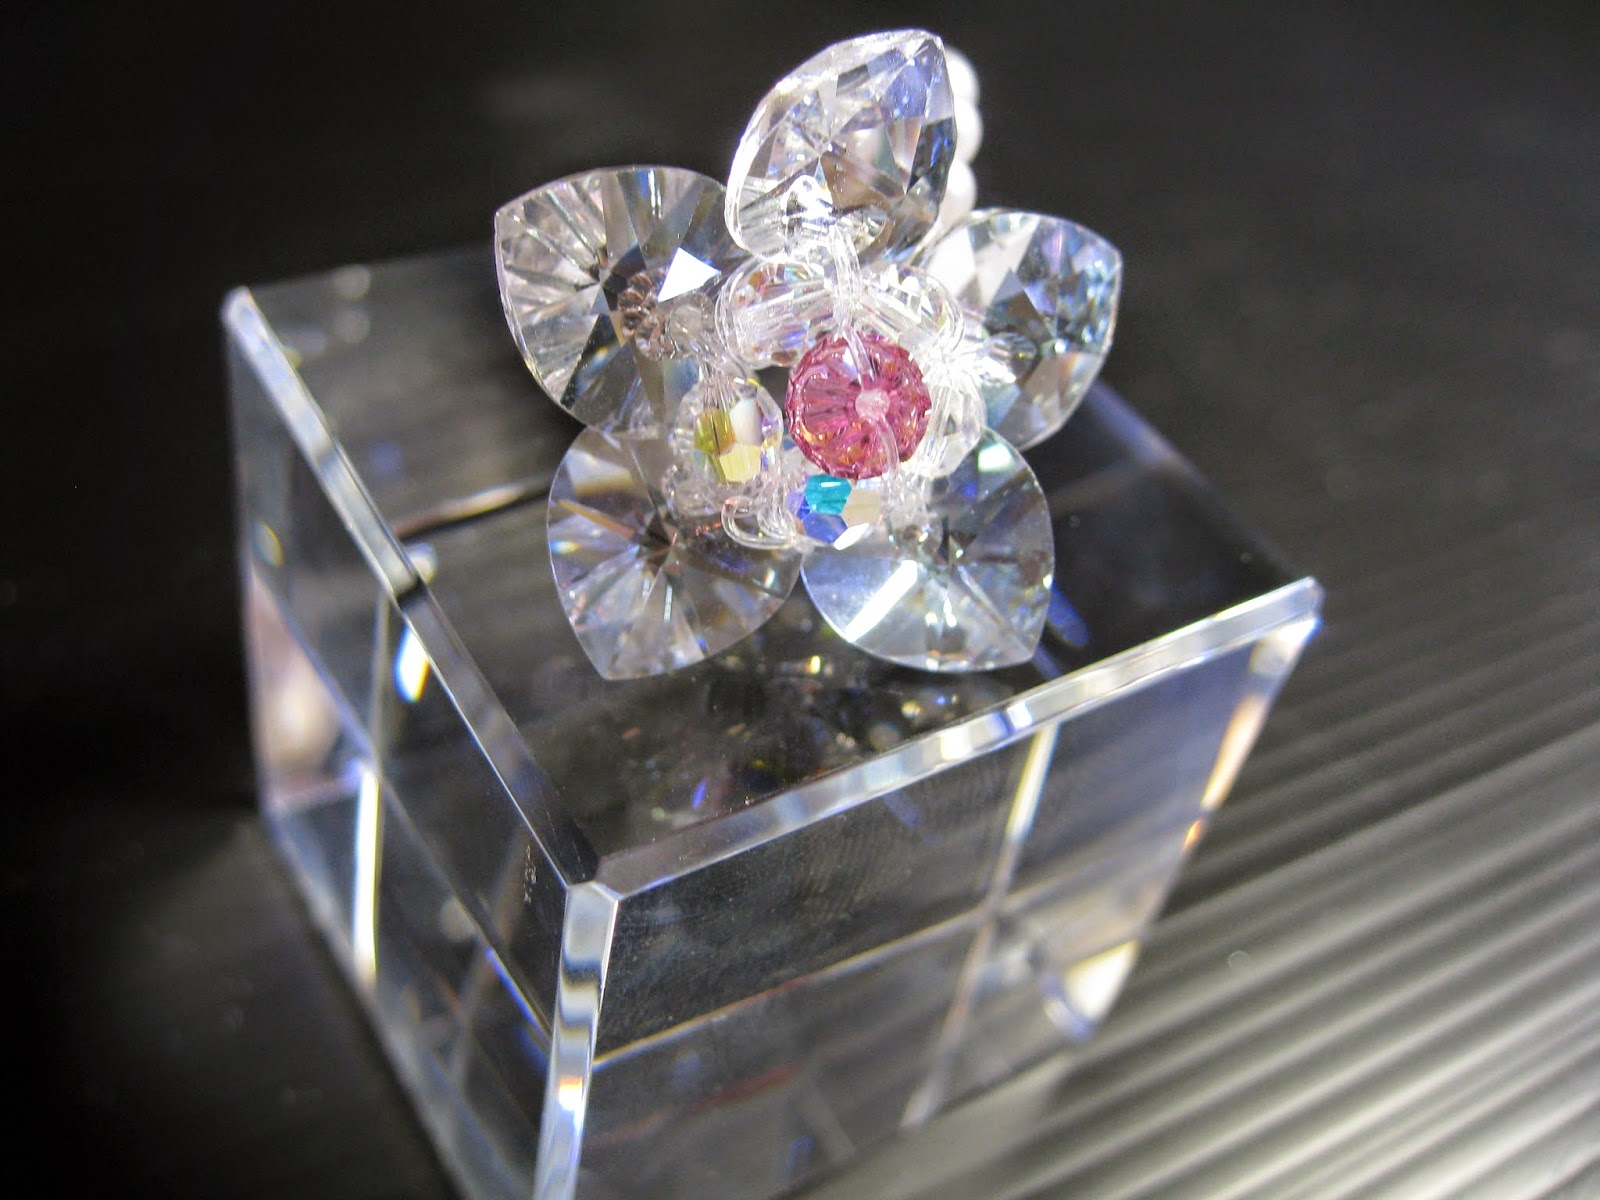 Sacred crystal lotus meaning of lotus flower colour lotus is usually found in five different colors white red blue purple and pink given below is the significance of each color izmirmasajfo